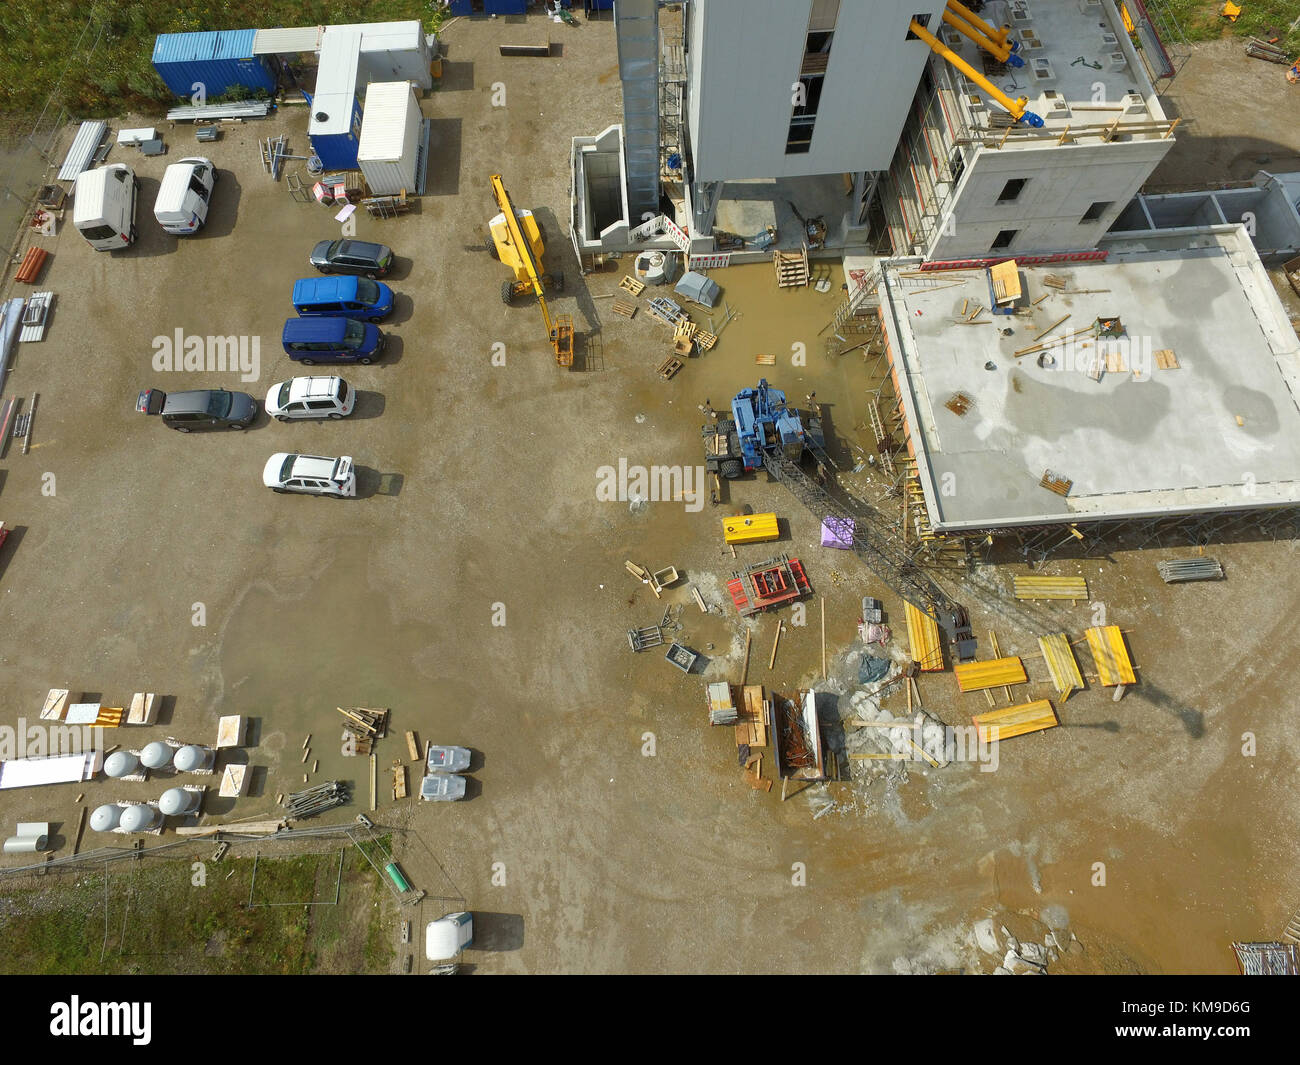 Industrial park aerial stock photos industrial park for Andalusia ford motor company